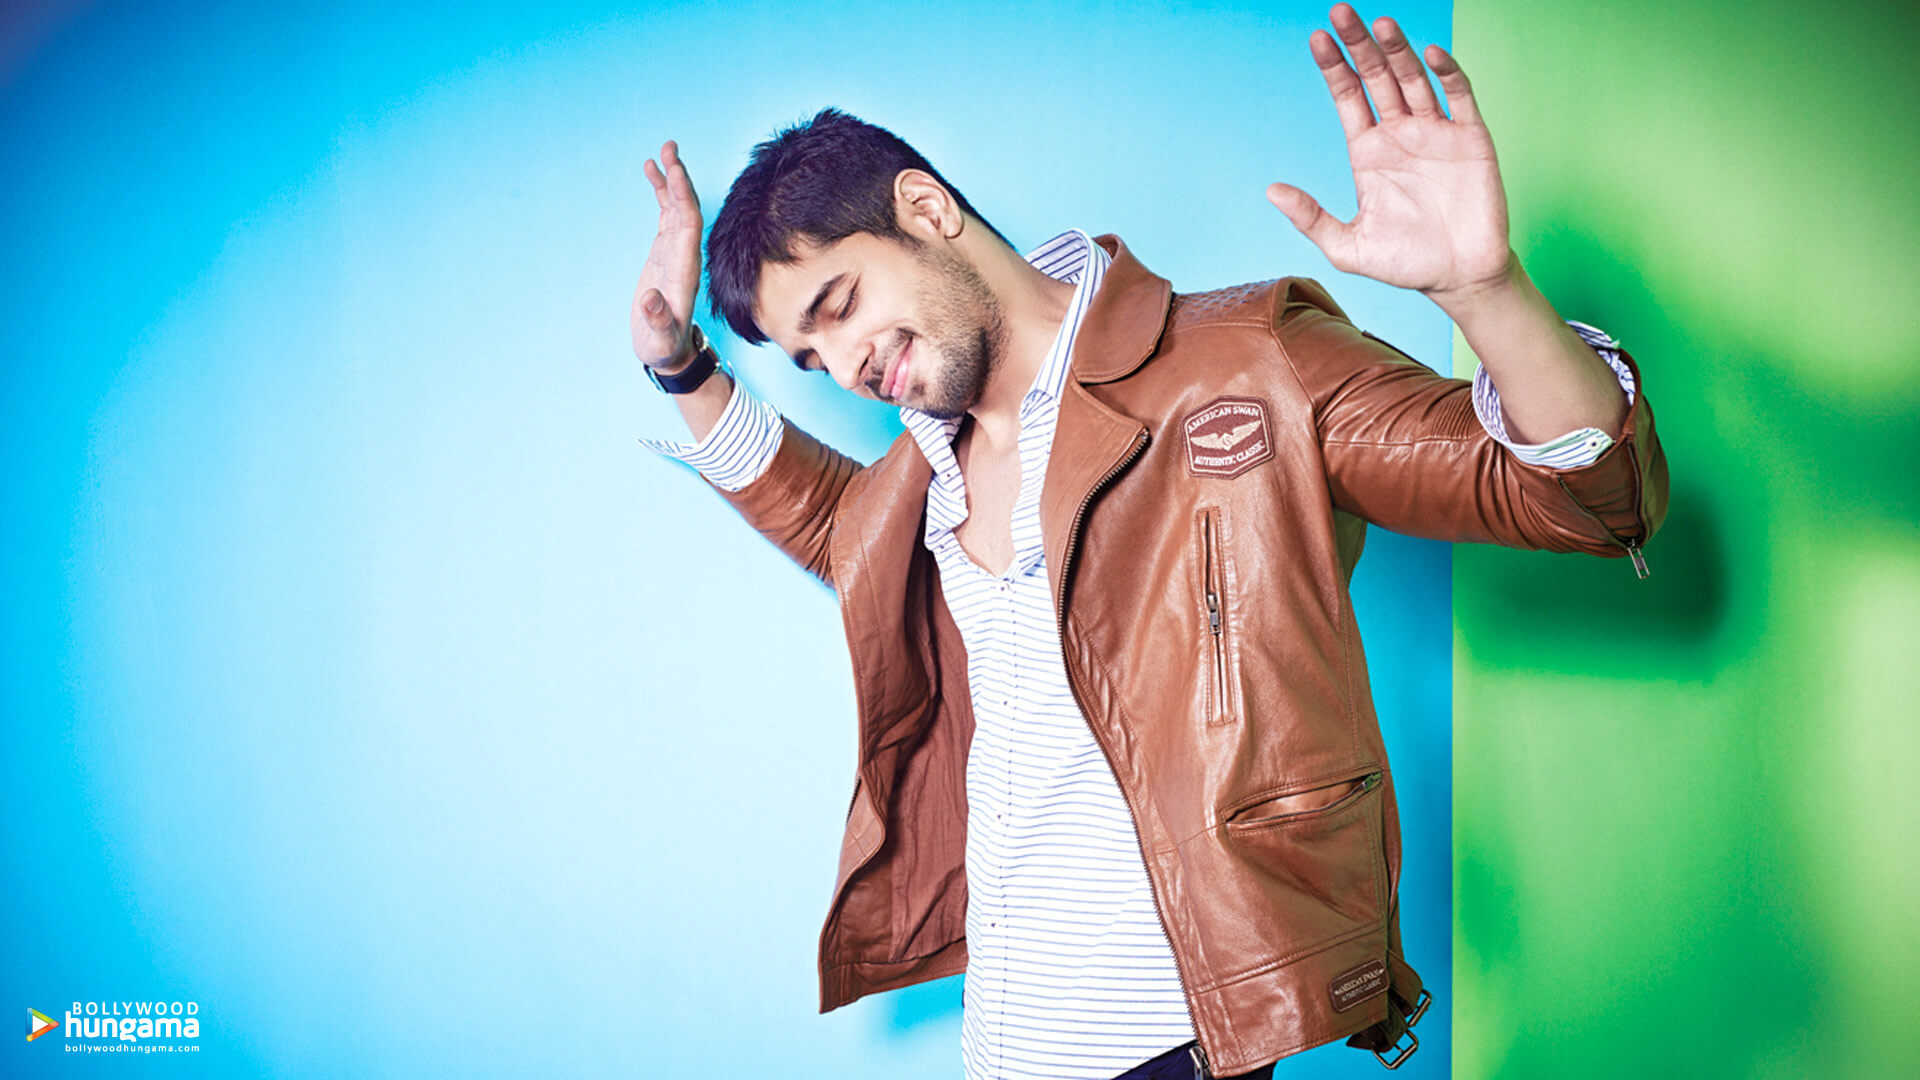 Sidharth Malhotra Movies, Height, Age, Photos, Birth Date, Biography, Girlfriend, Family, Hairstyle, Education, Details, Net Worth, Awards, Wiki, Instagram, Facebook, Imdb, Twitter (8)